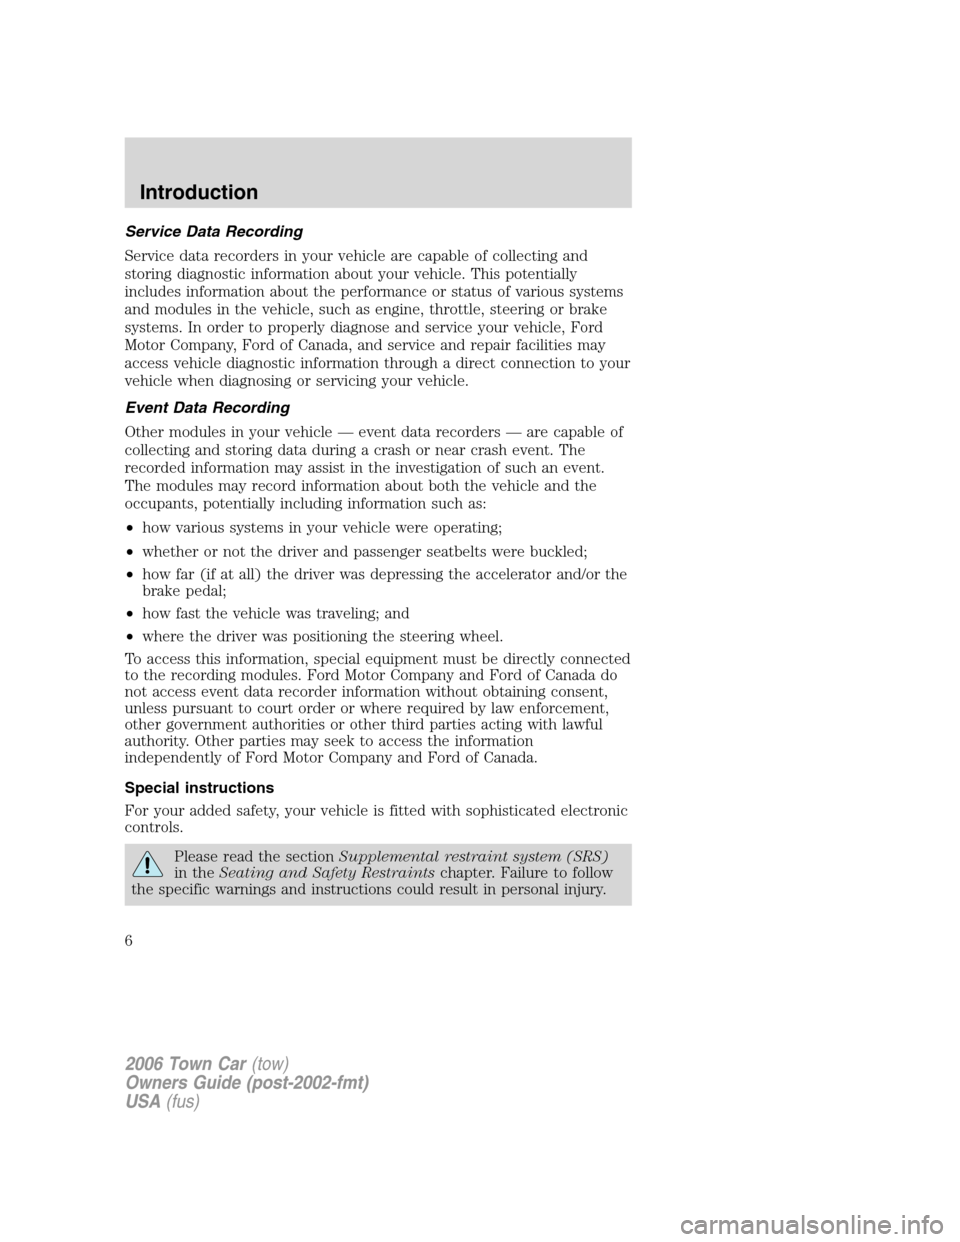 LINCOLN TOWN CAR 2006  Owners Manual, Page 6